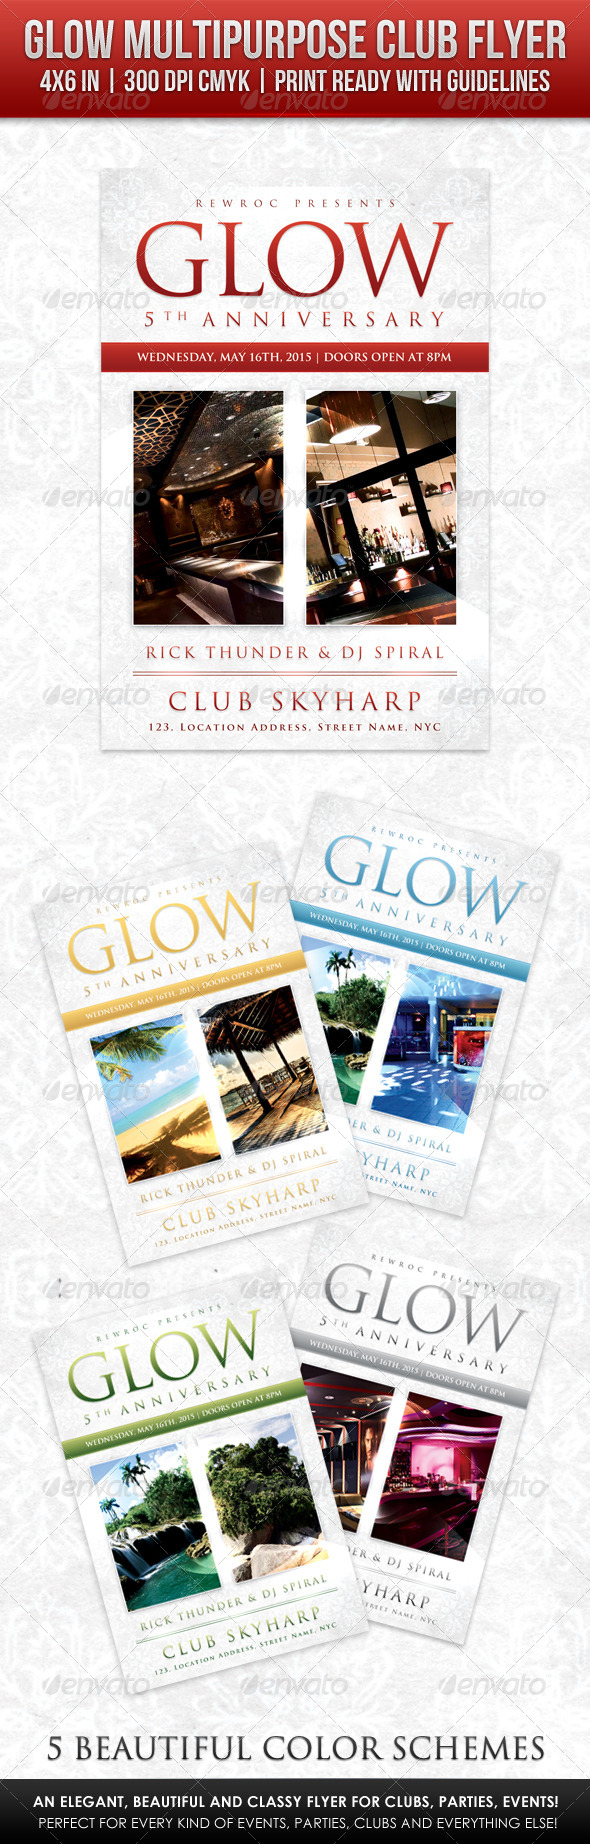 GraphicRiver Glow Multipurpose Club Flyer 6949762